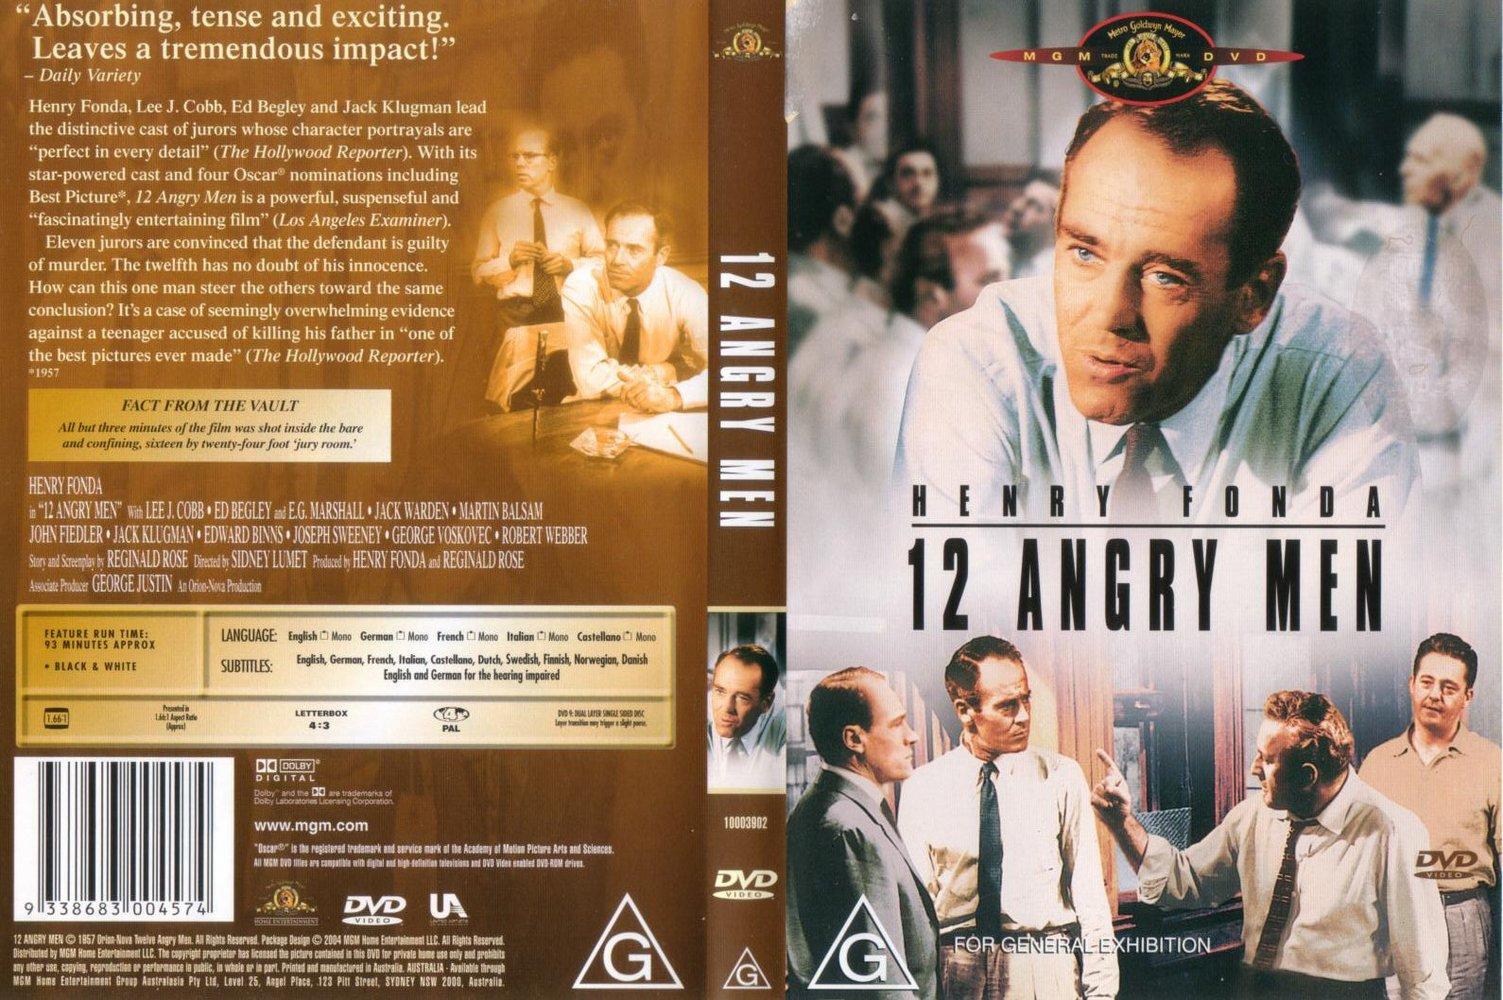 12 angry men philosophical approach The movie twelve angry men begins with an eighteen year old boy from the ghetto who is on trial for the murder of his abusive father a jury of twelve men is locked in the deliberation room to decide the fate of the young boy twelve angry men: summary & analysis.